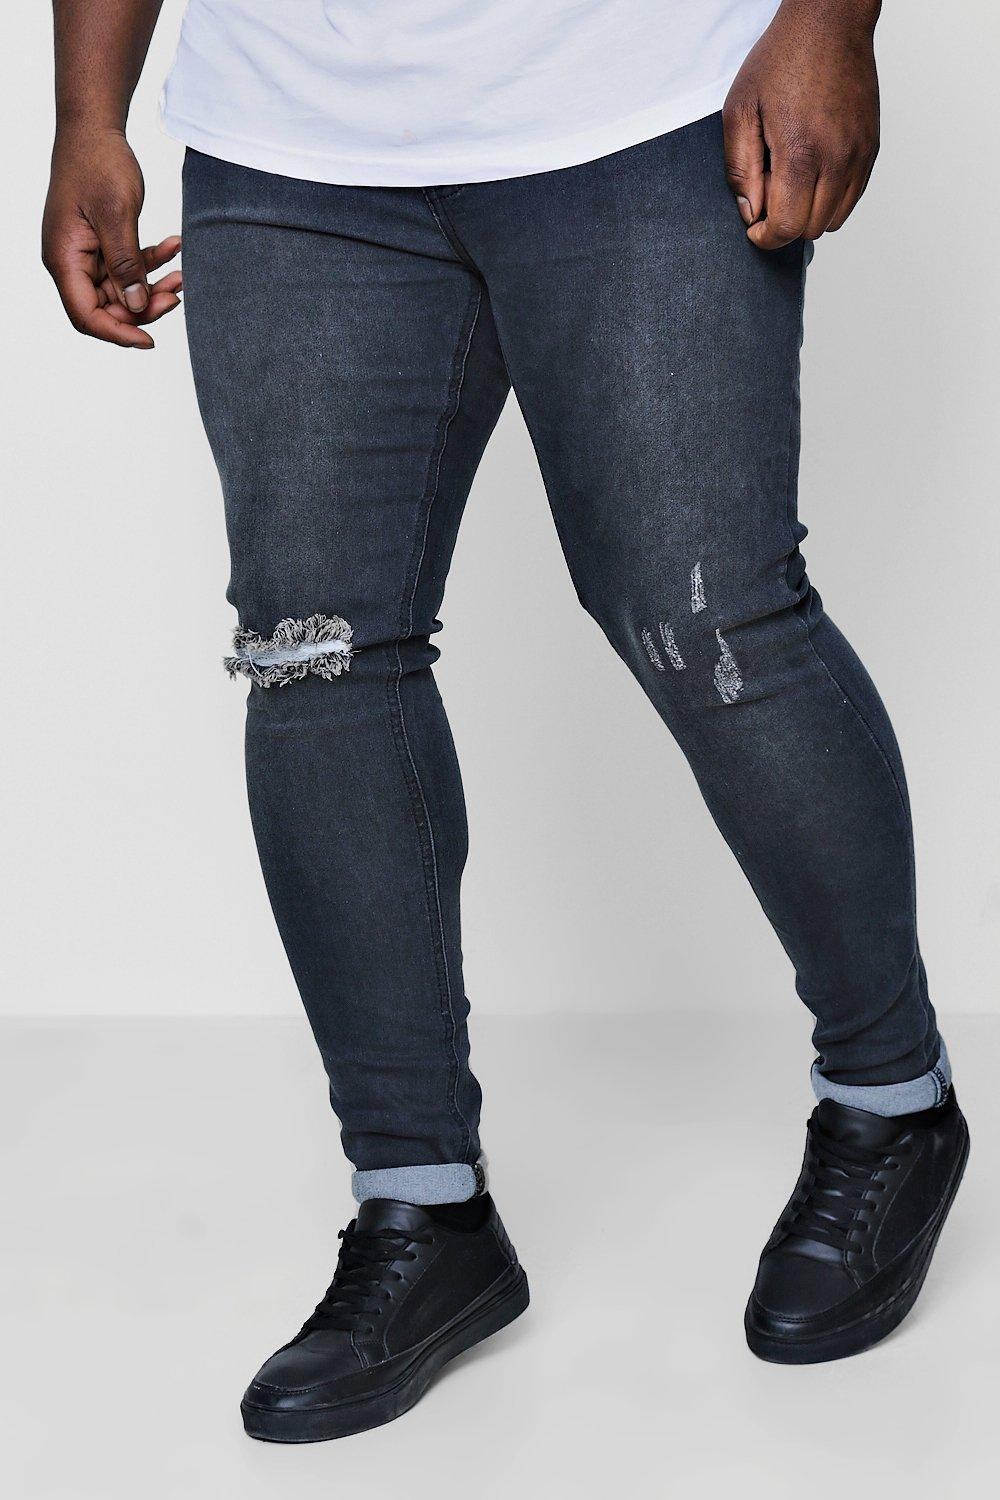 975484767aa51 Boohoo Big And Tall Rip And Repair Skinny Jeans in Blue for Men - Lyst